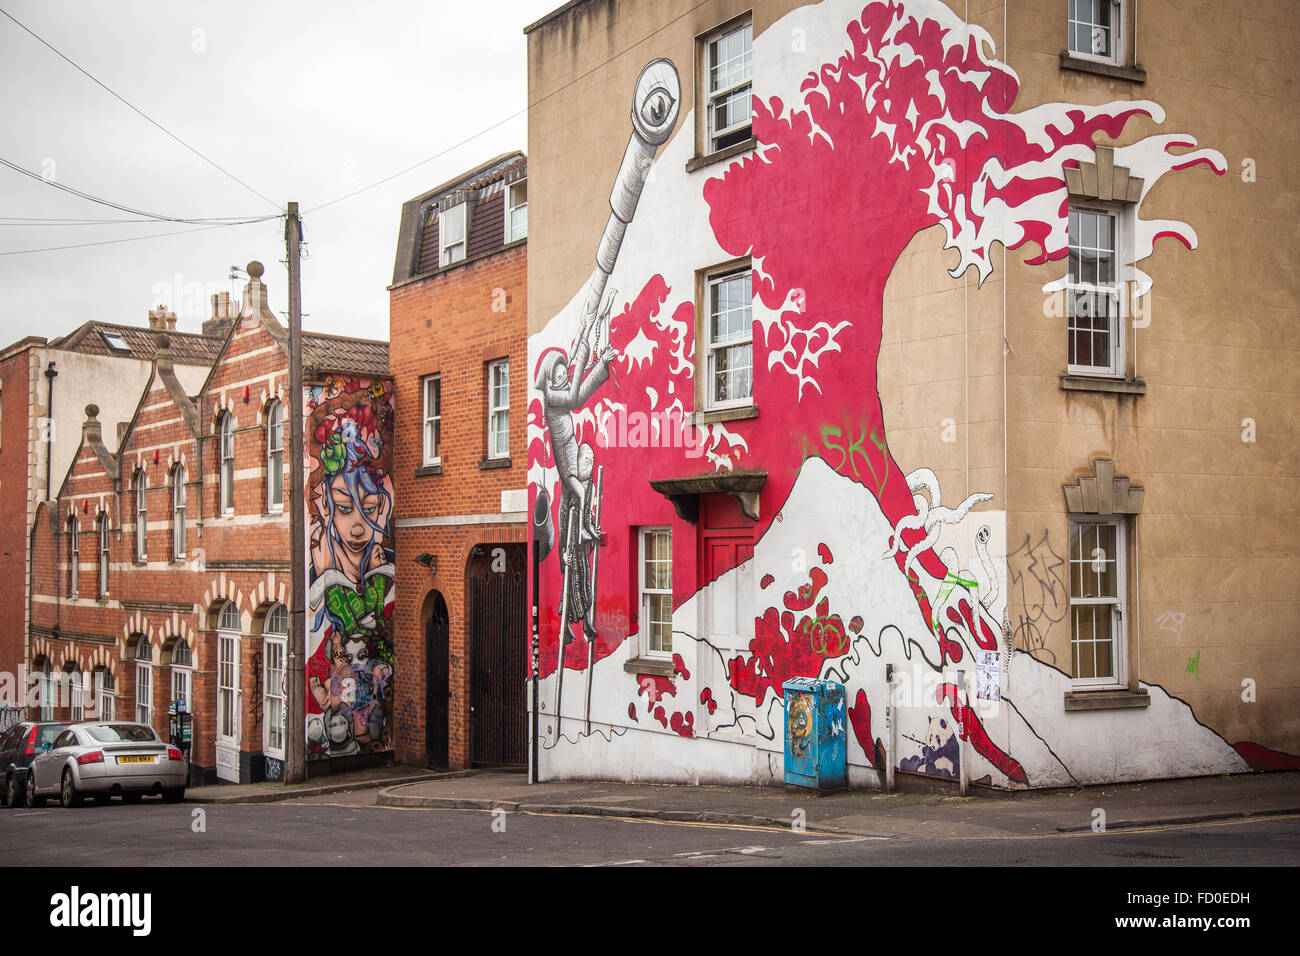 Street art by MM13 in Stokes Croft, Bristol, England - Stock Image